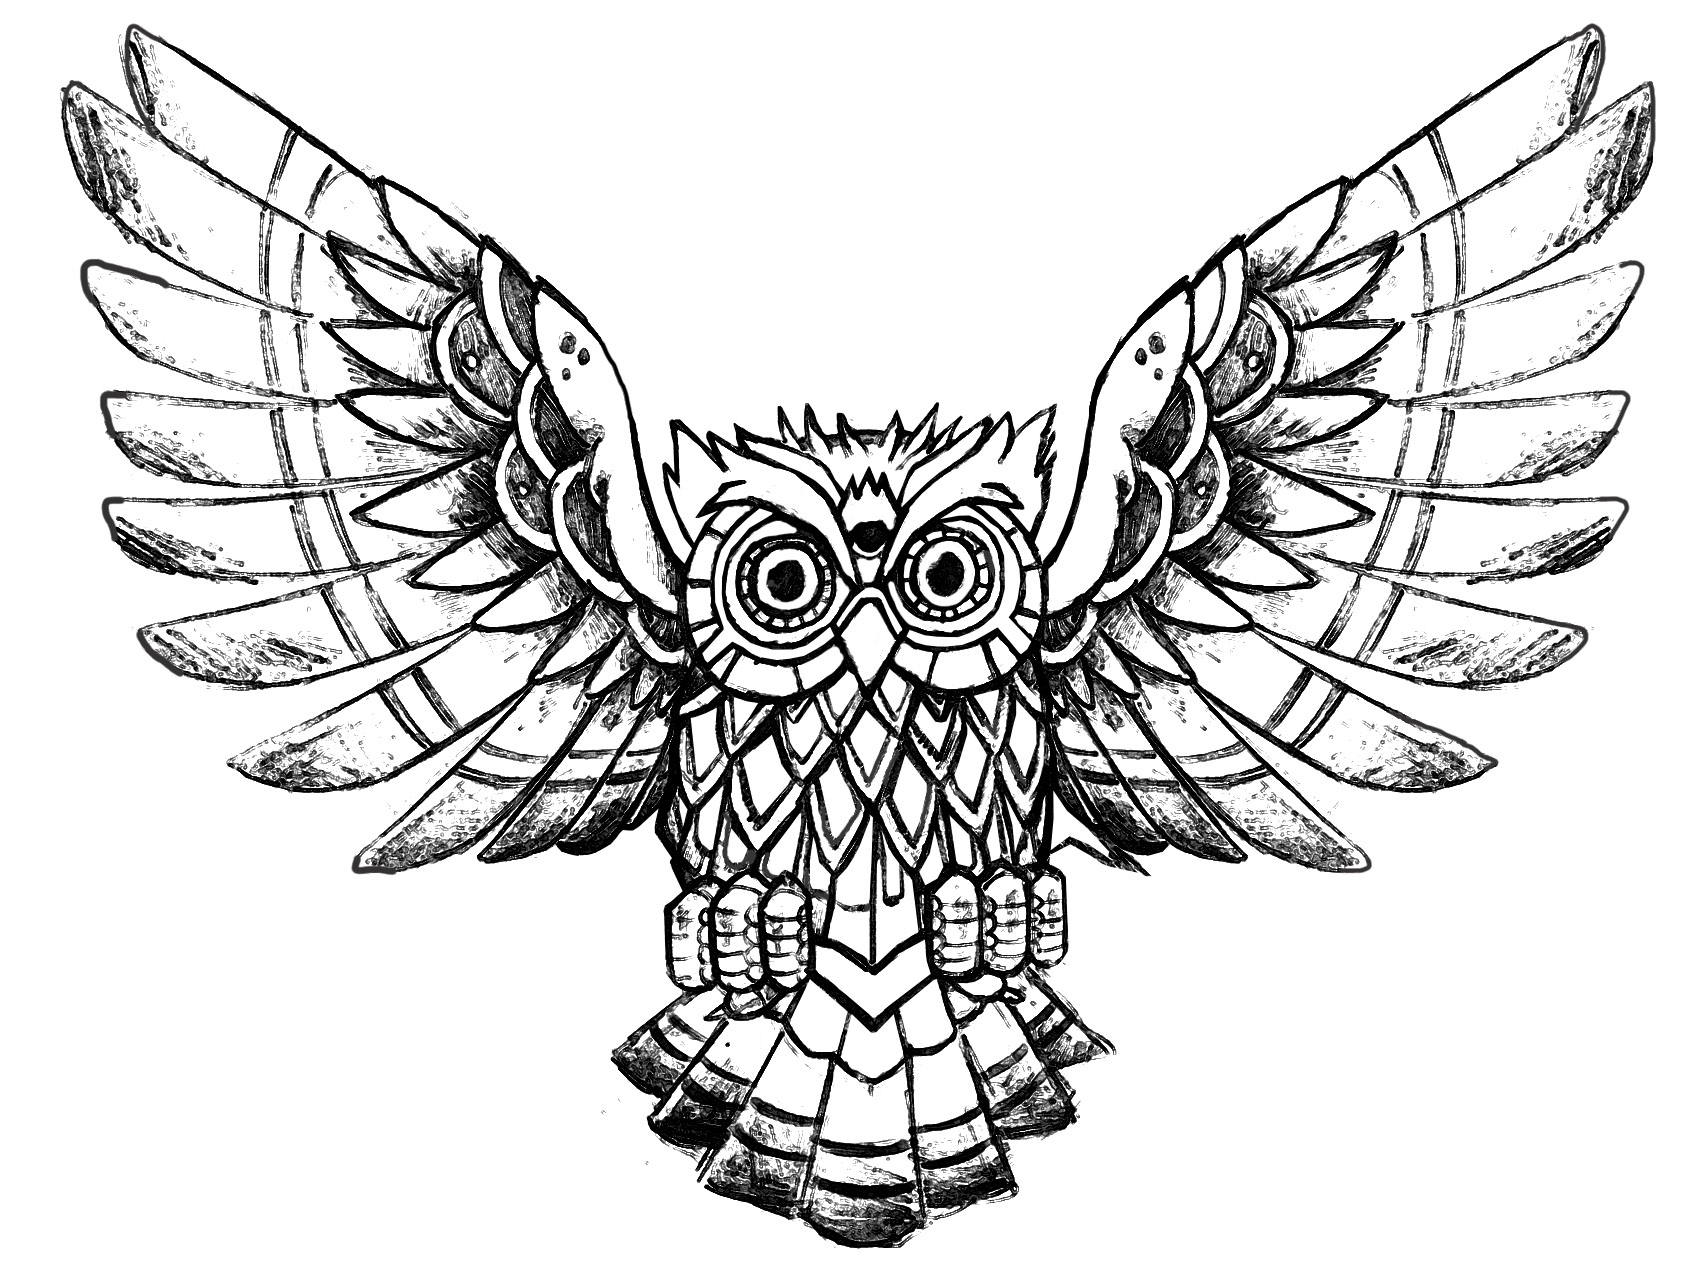 Owl raw drawing - Owls - Coloring pages for adults